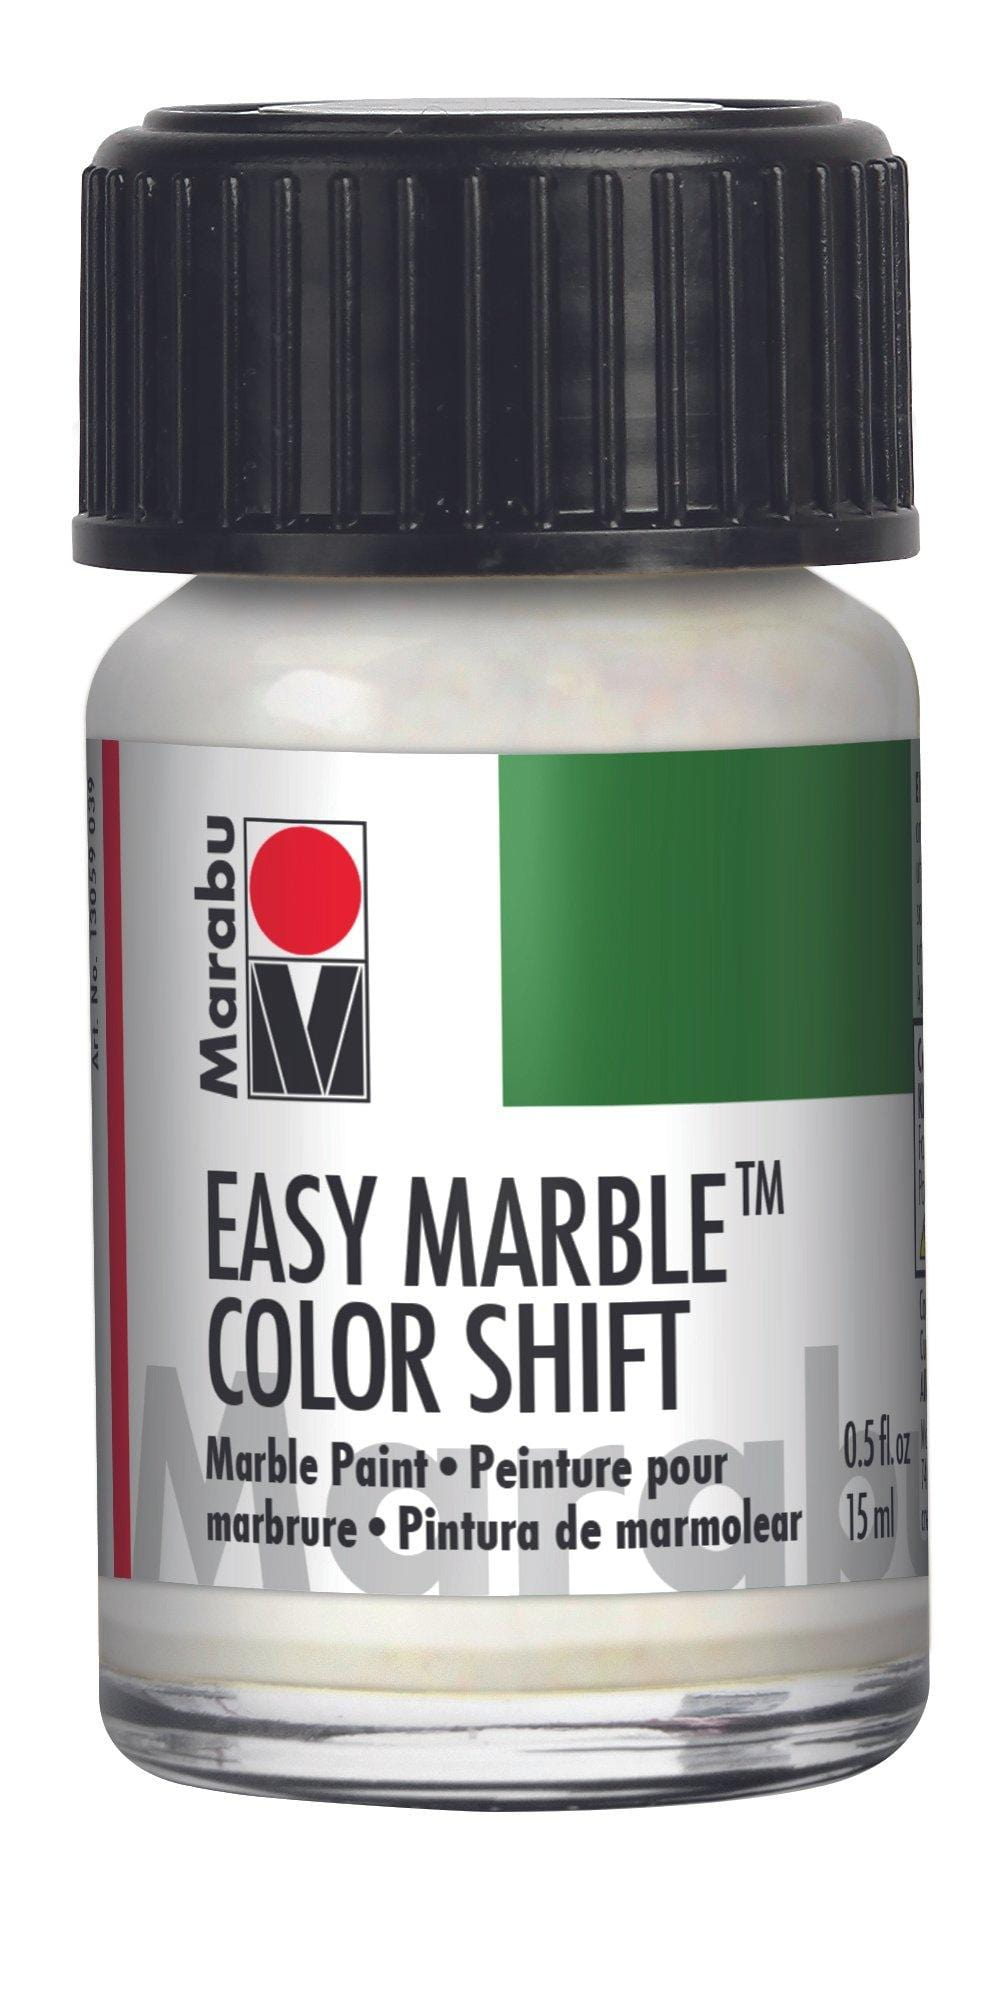 Metallic Green-Violet-Silver 727 - Marabu Easy Marble Paint